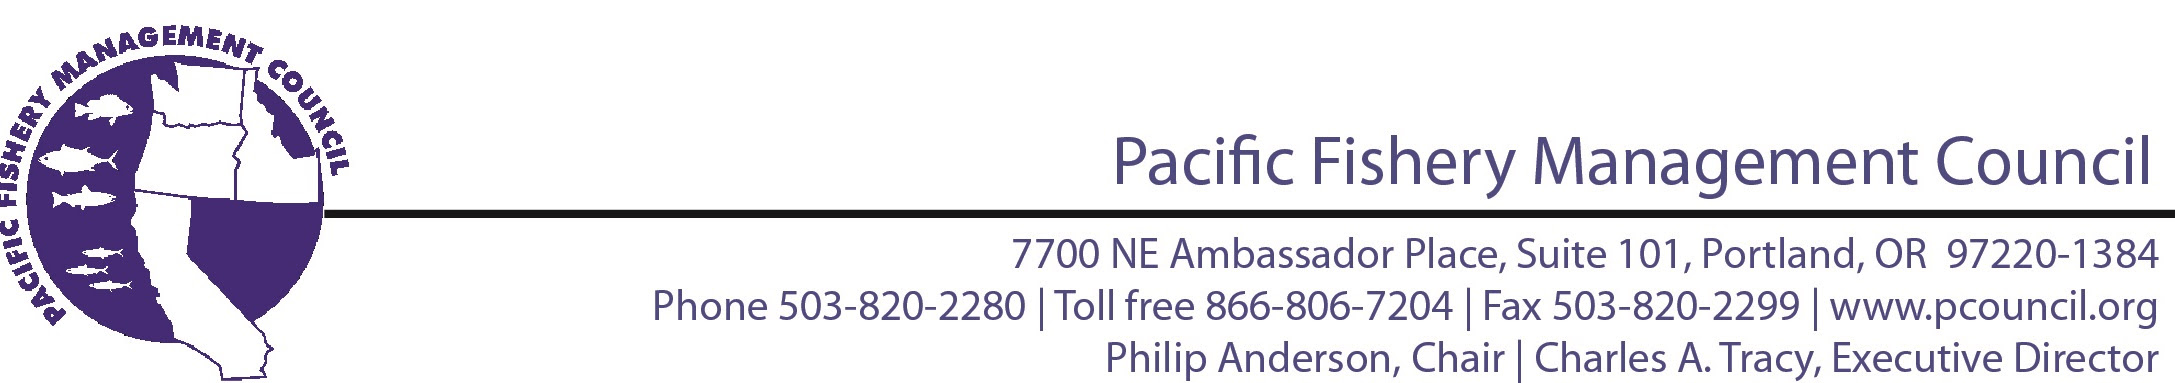 Pacific Fishery Management Council, Philip Anderson, Chair; Charles A. Tracy Executive Director